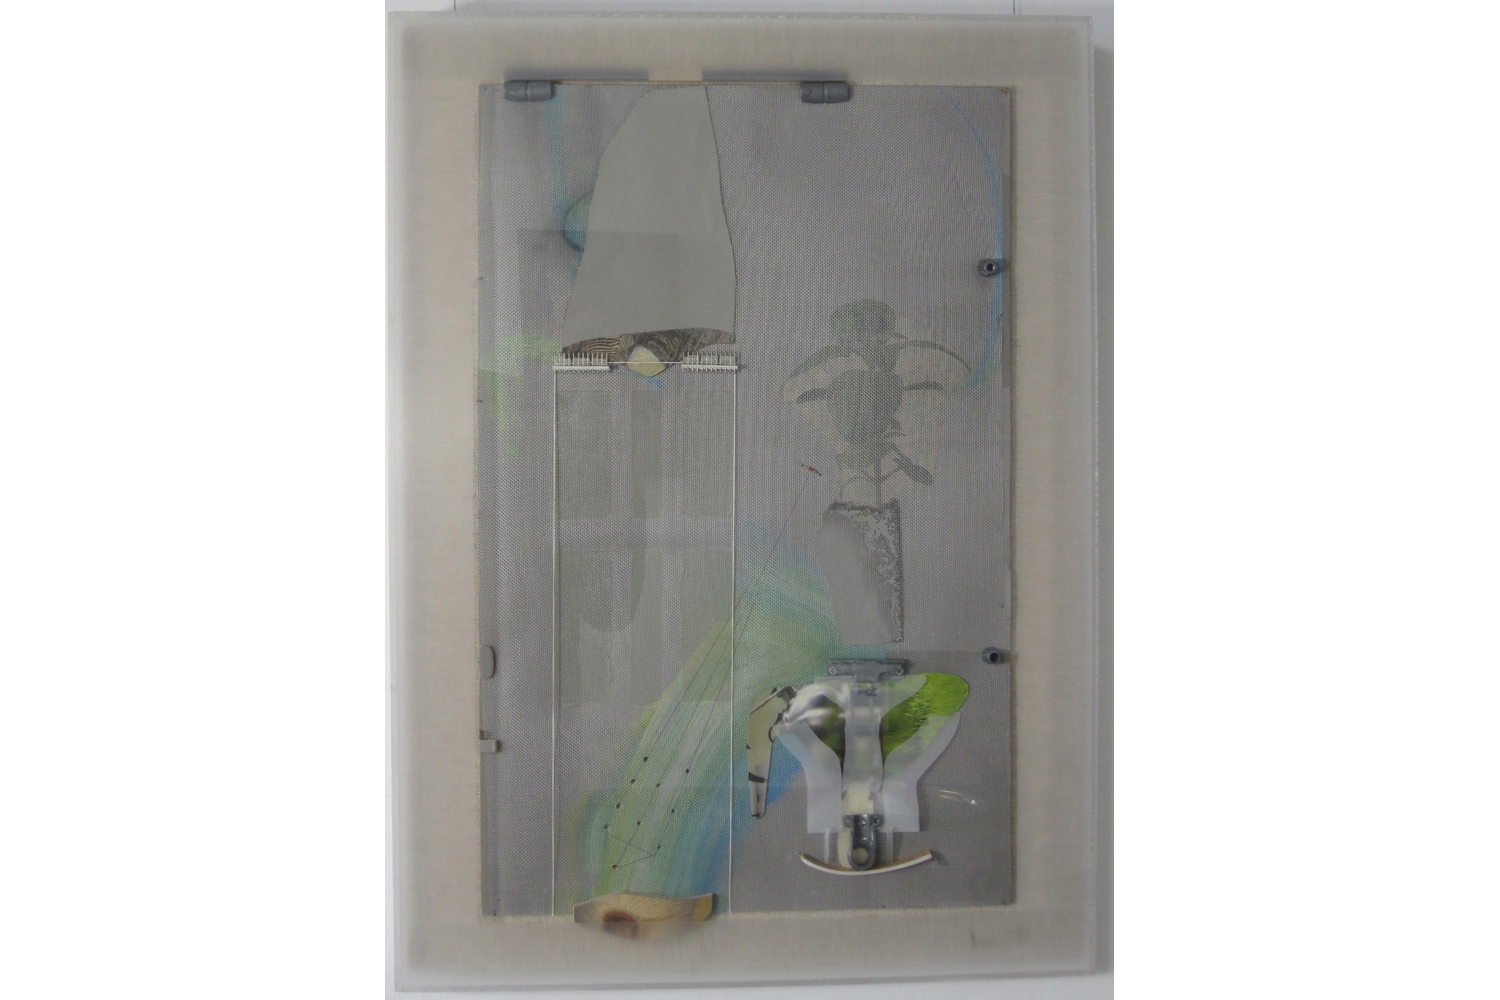 Choong-Sup Lim  Grafting, 2008 Rice Paper, Canvas, Wood, Acrylic and Cage 86 x 61 cm (33.85 x 24 inches)